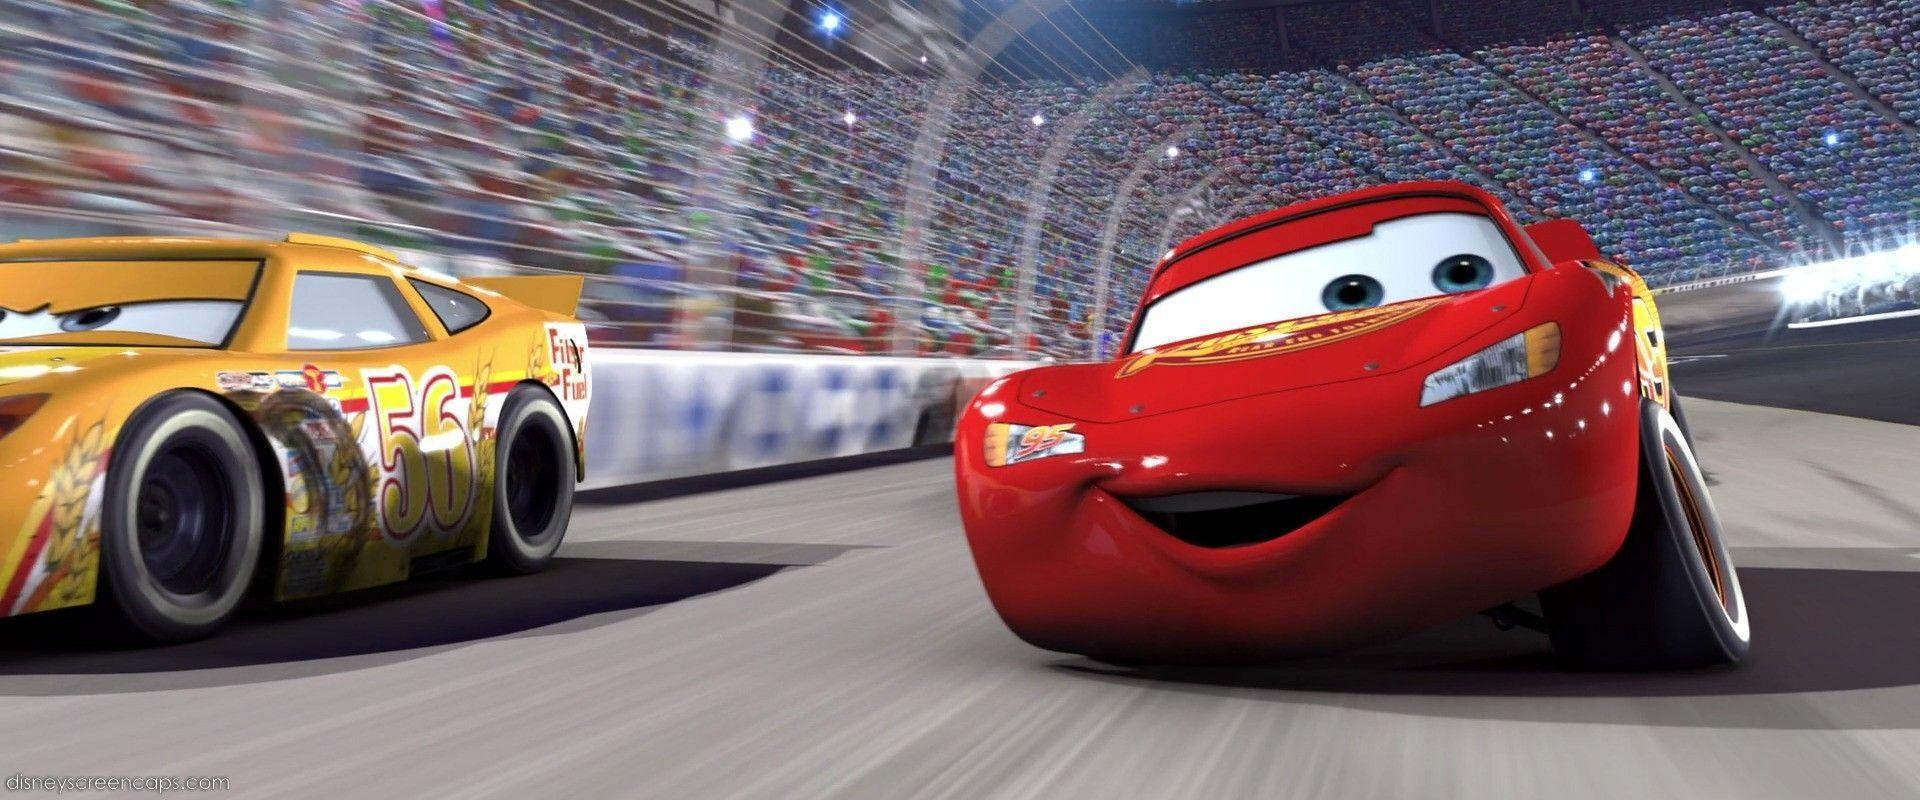 Free Download Lightning Mcqueen Wallpapers 1920x800 For